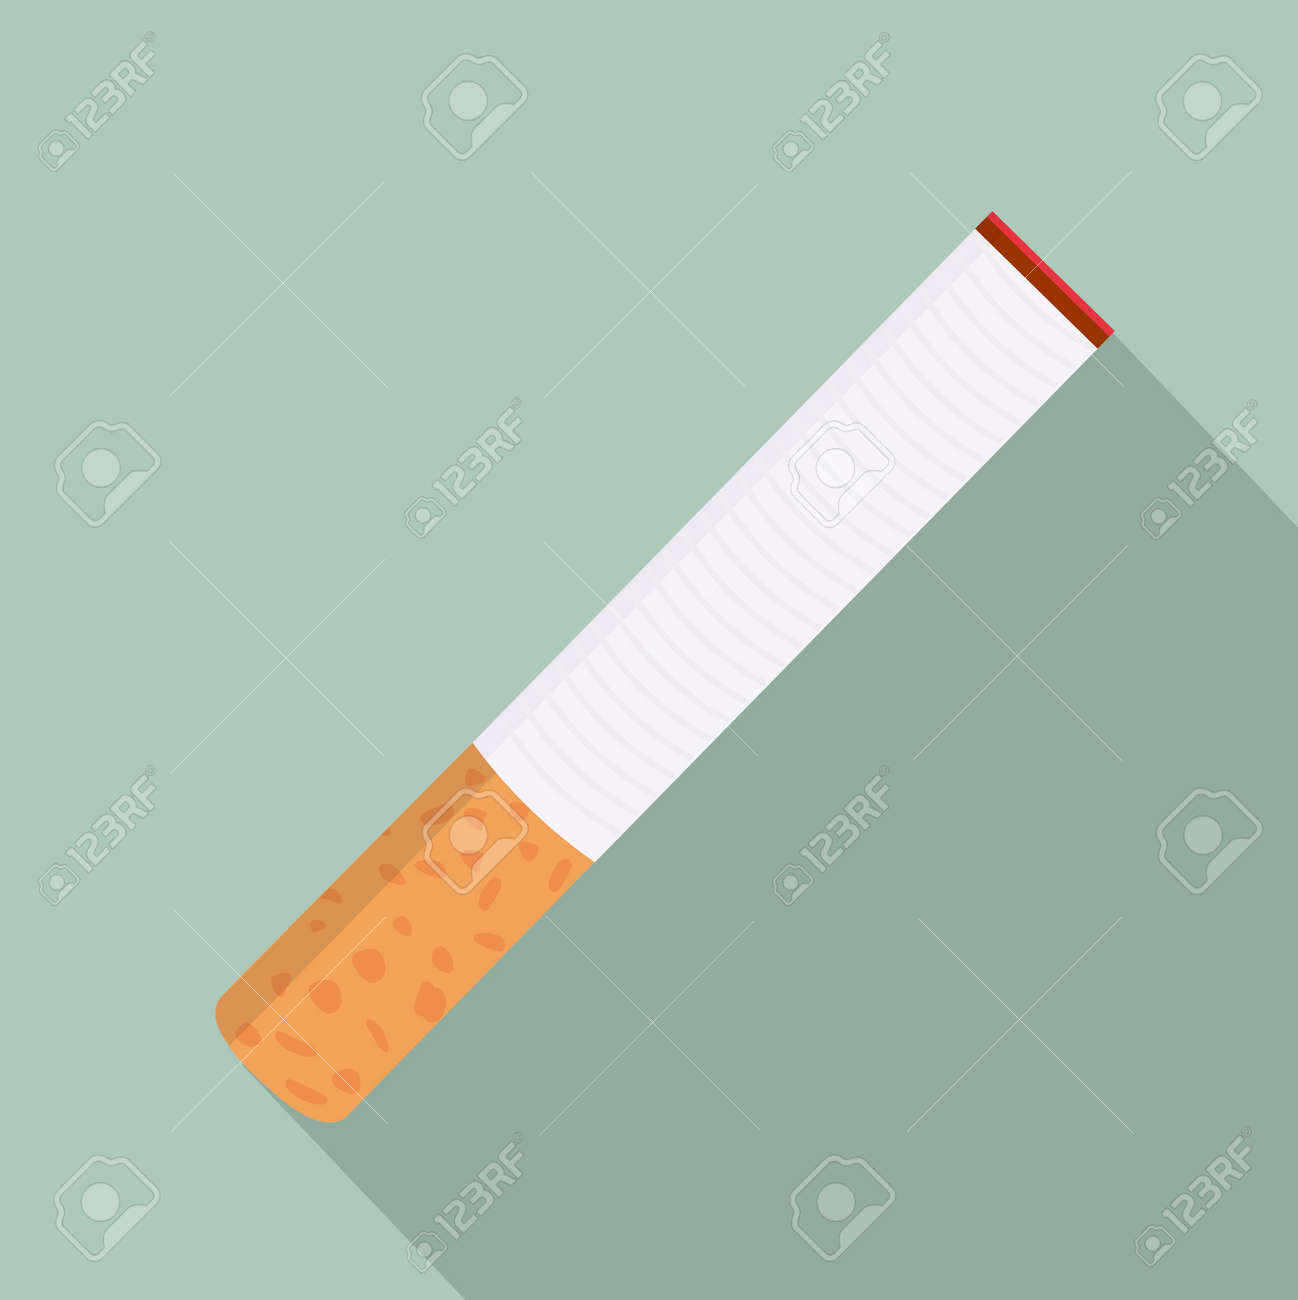 Cigarette filters with long shadow sign - 168920258